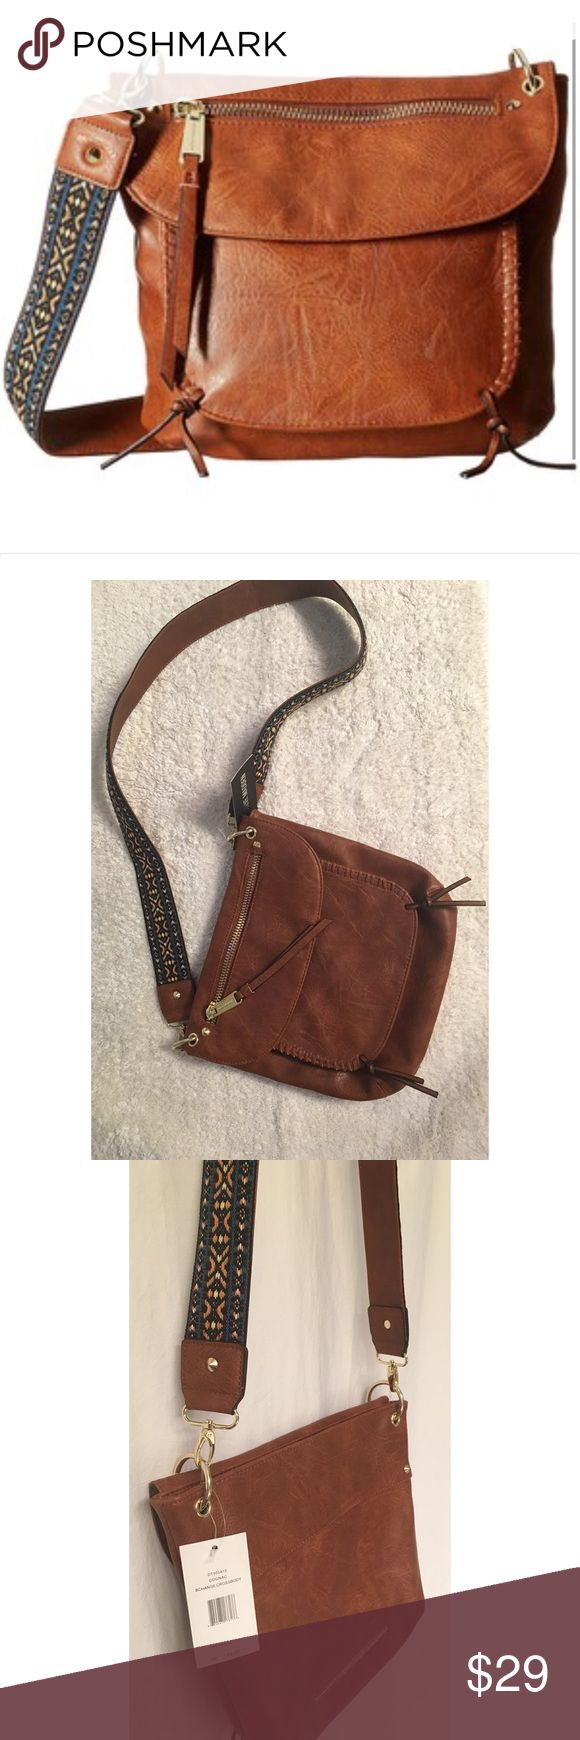 🎉1 day sale🎉Steve Madden crossbody purse!! NWT! Brown Steve Madden crossbody purse!! Strap is embroidered. Gold zippers and detail! NWT! Never used and in excellent condition!! Steve Madden Bags Crossbody Bags